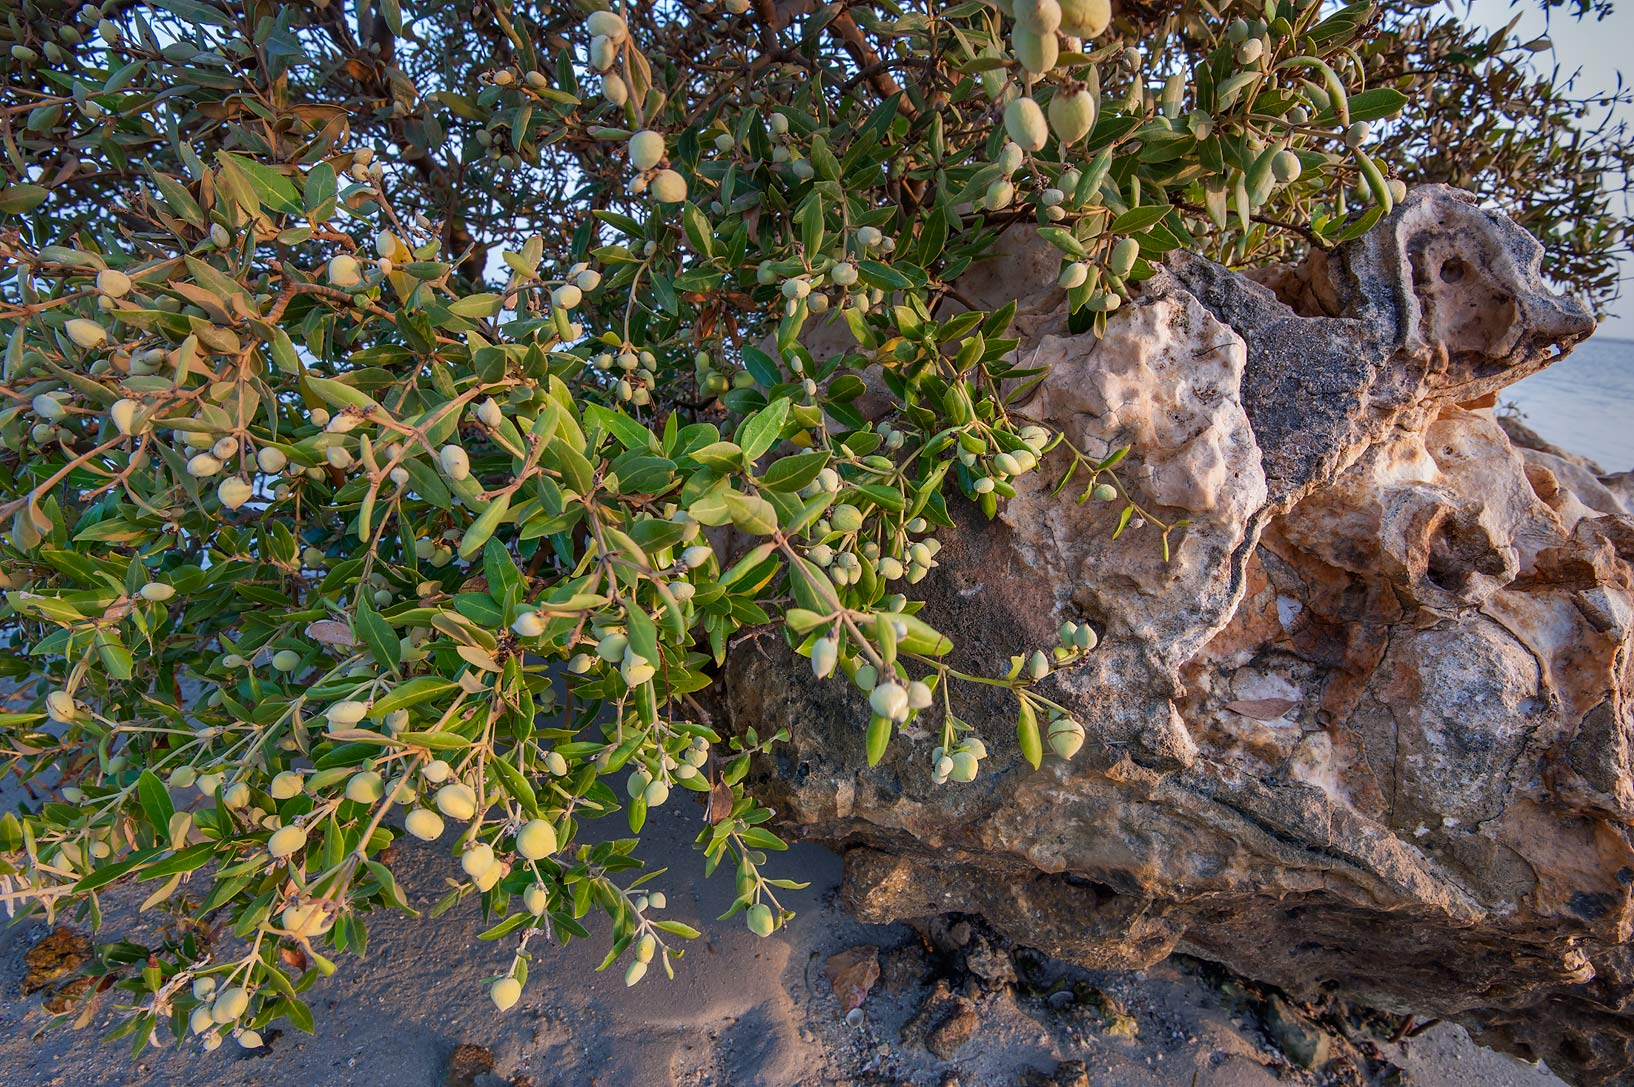 Mangrove tree (Avicennia marina) with fruits in...Jazirat Bin Ghanim). Al Khor, Qatar